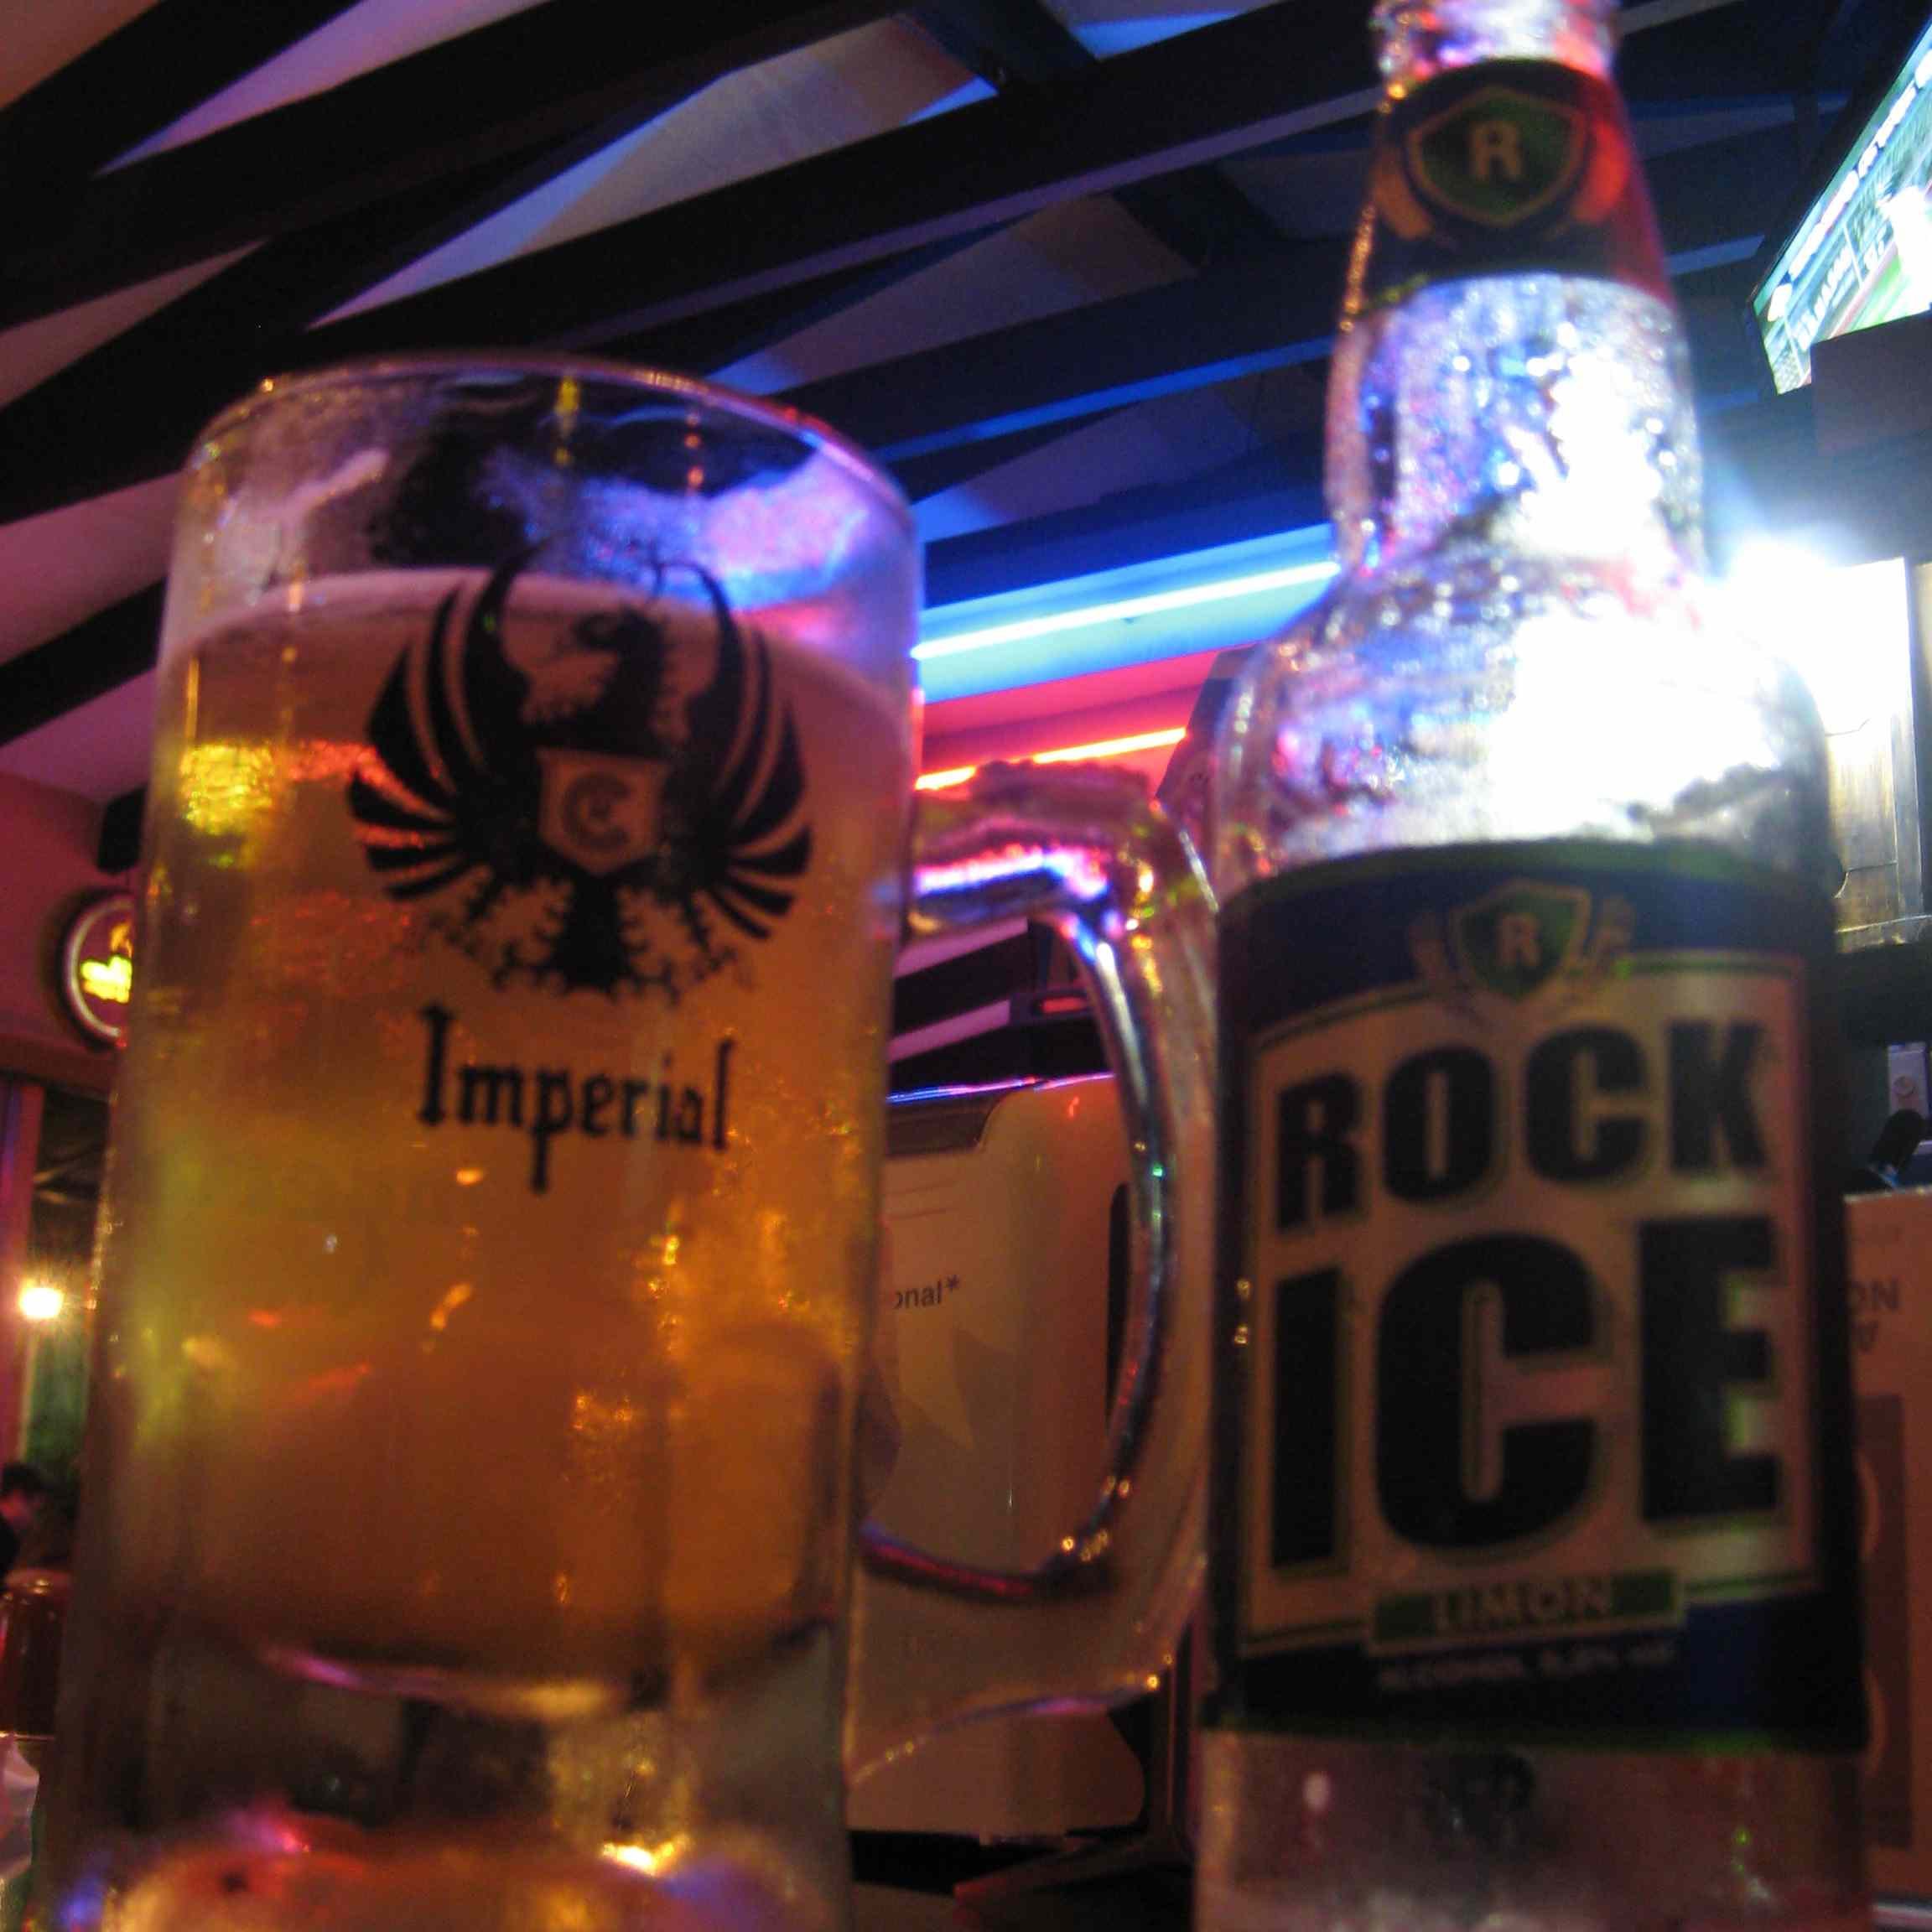 A glass of Imperial and Rock Ice Limon